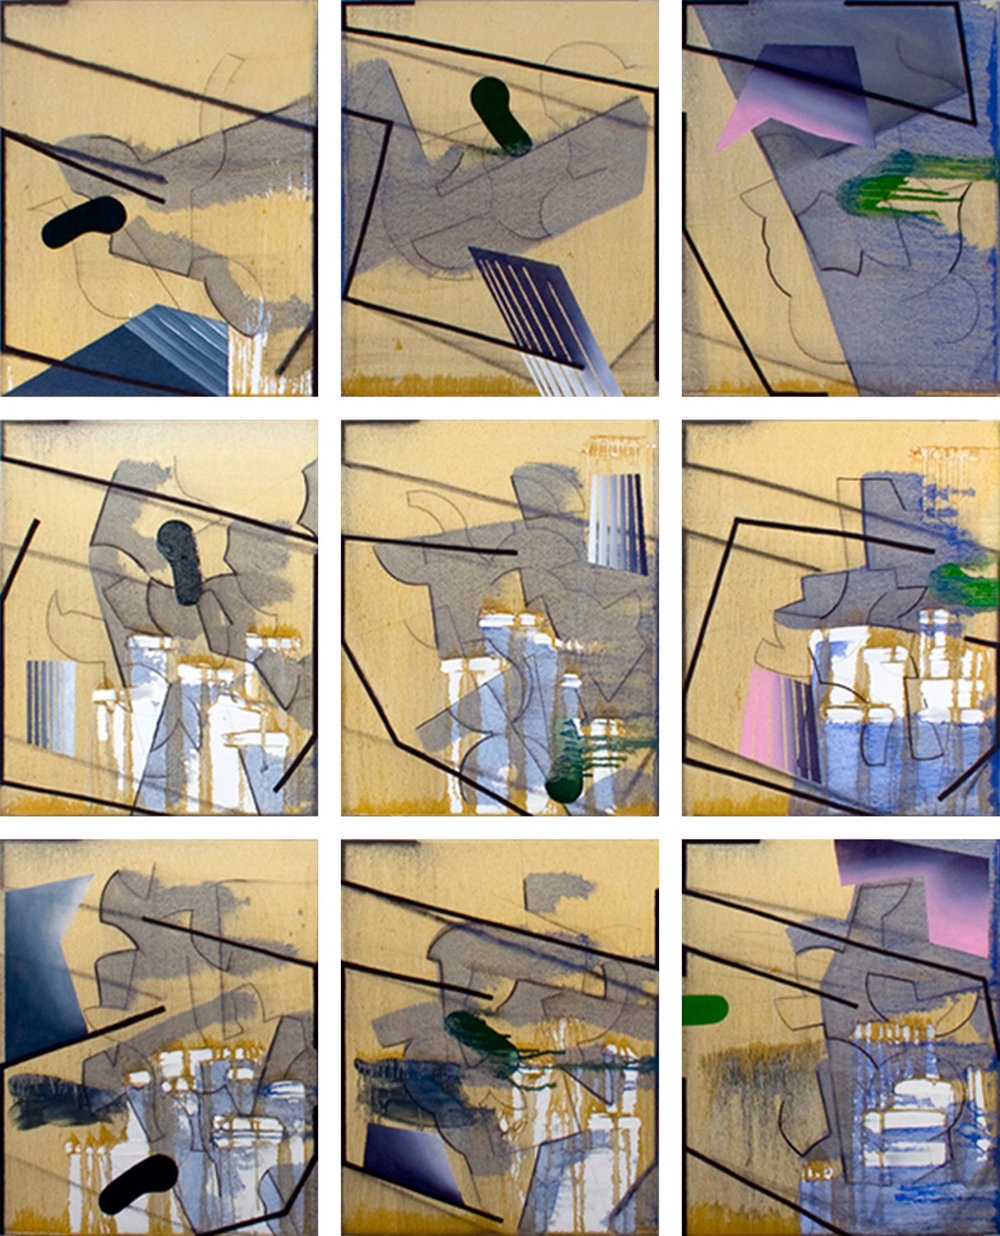 Metanoia, 9 panels, December 2011